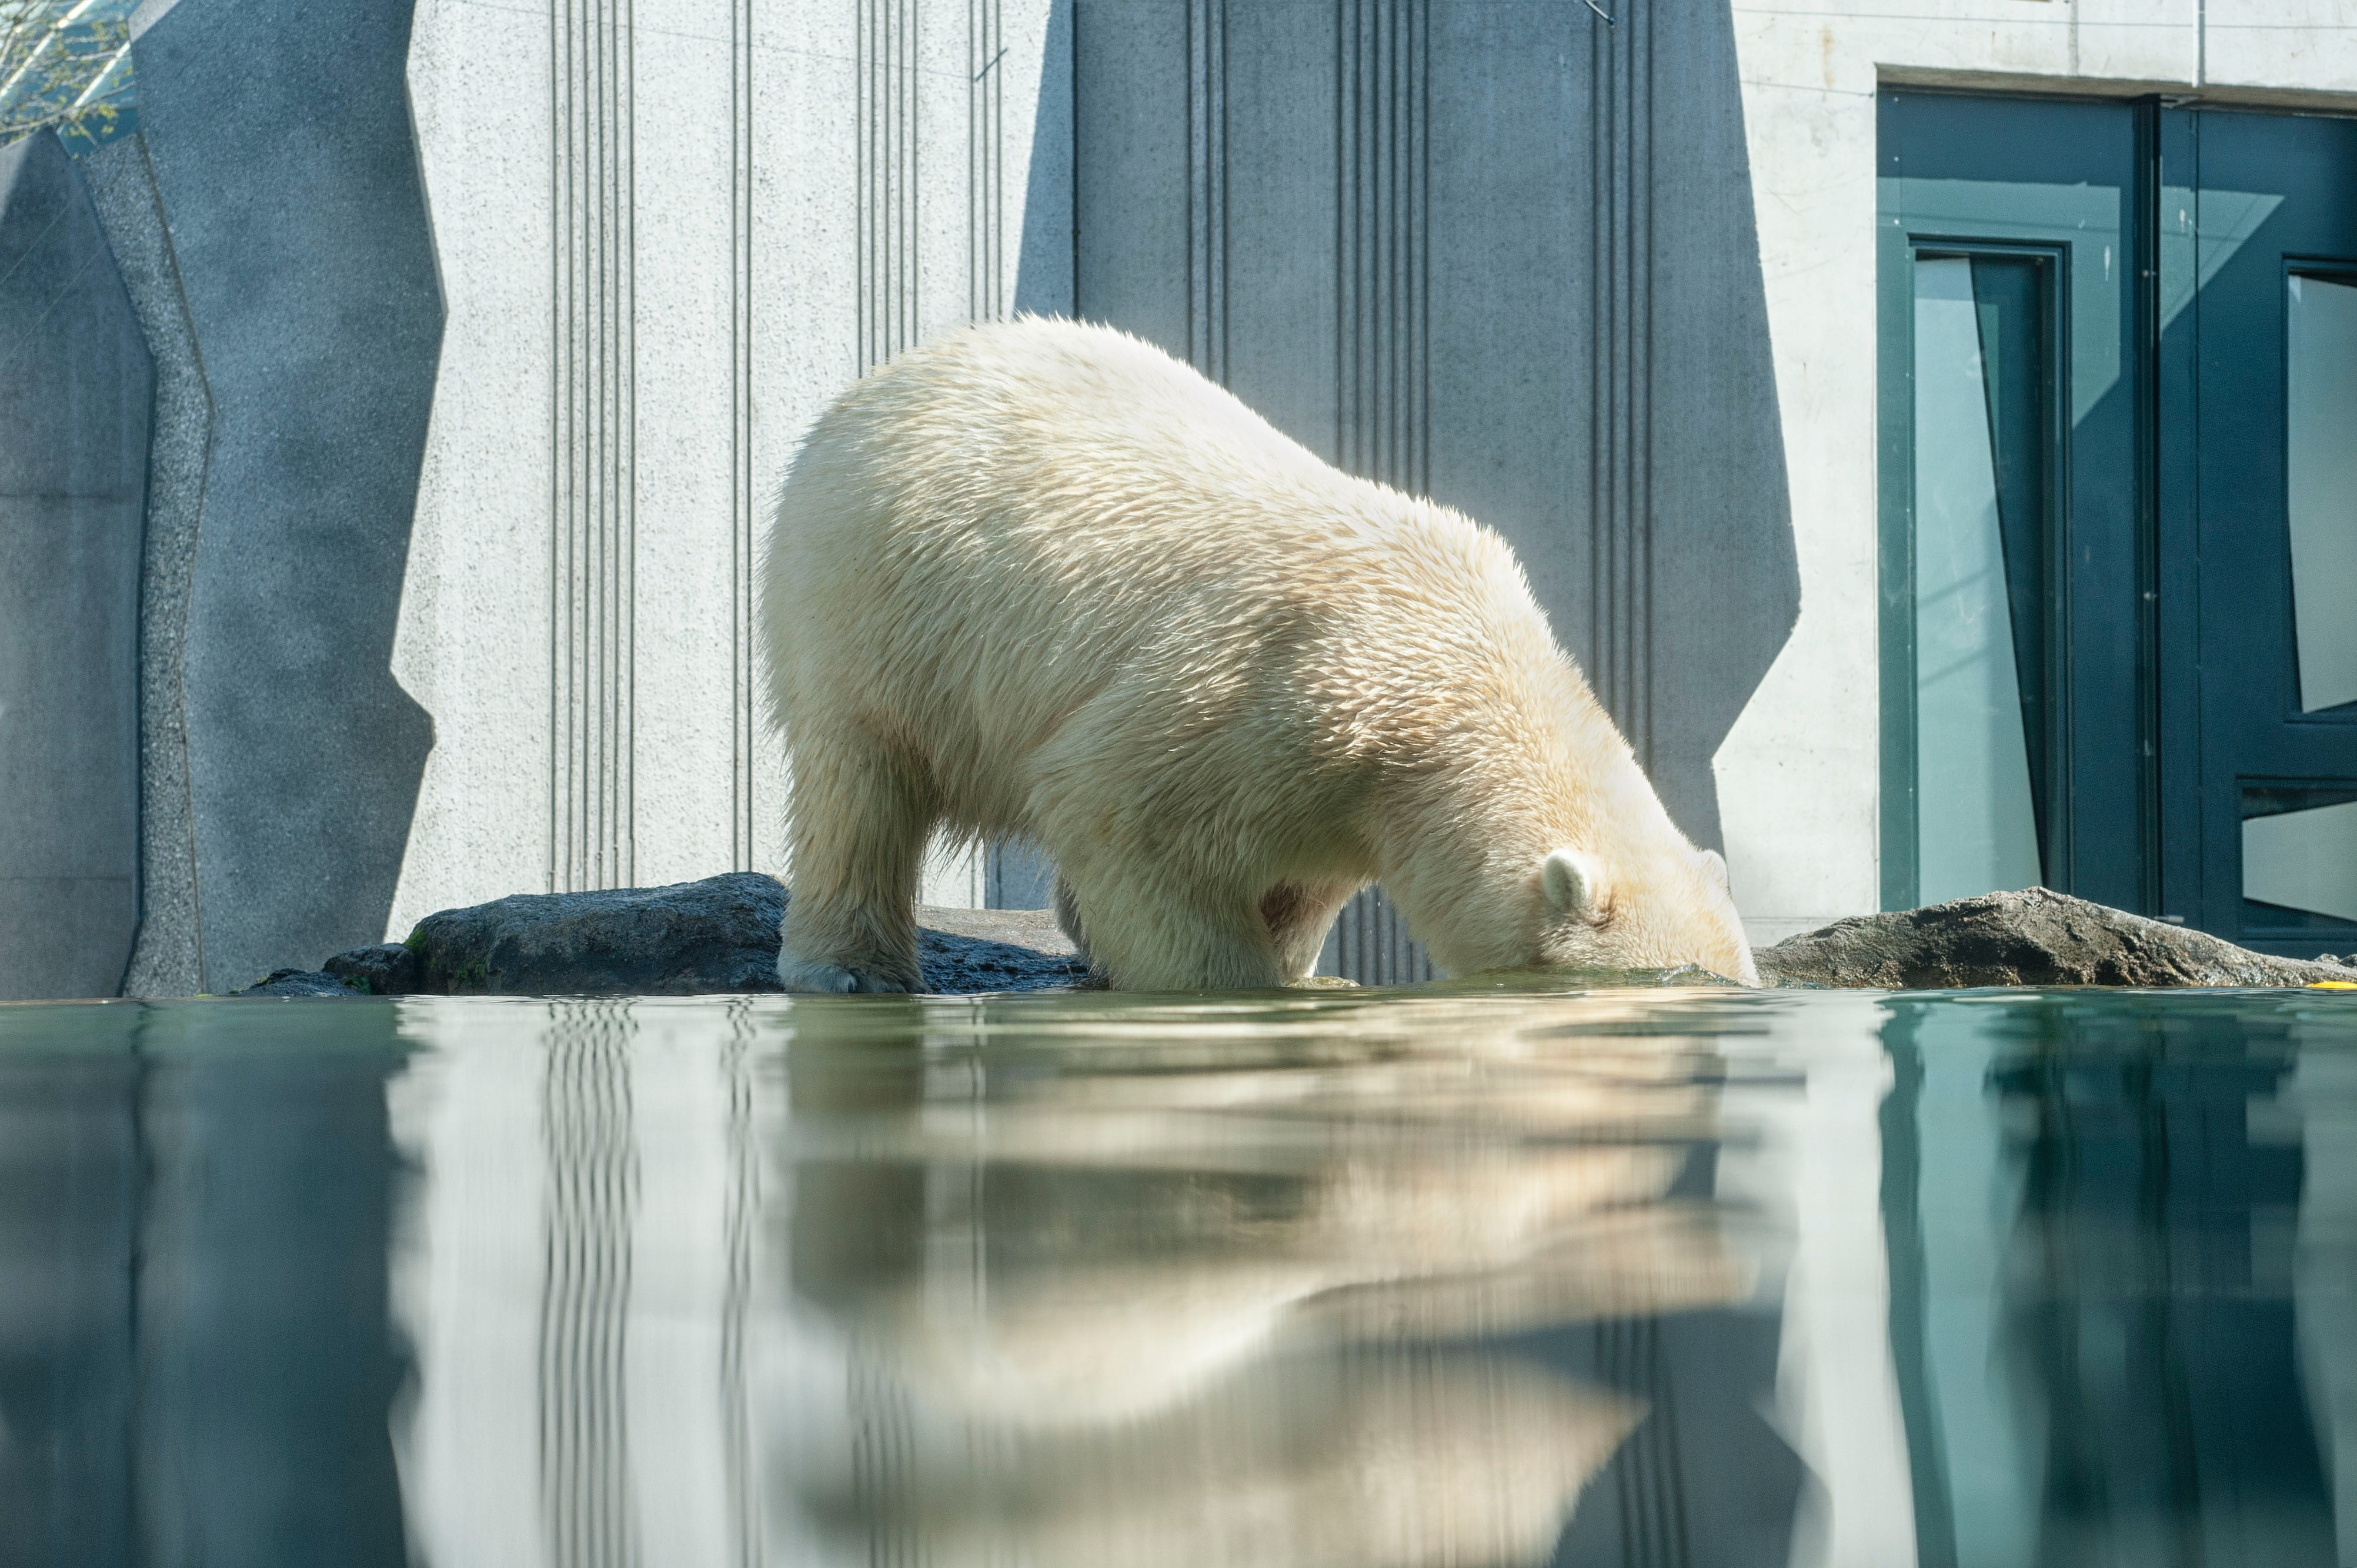 polar bear with its head in a pool of water in a zoo, Image © Jacqueline Godany on Unsplash